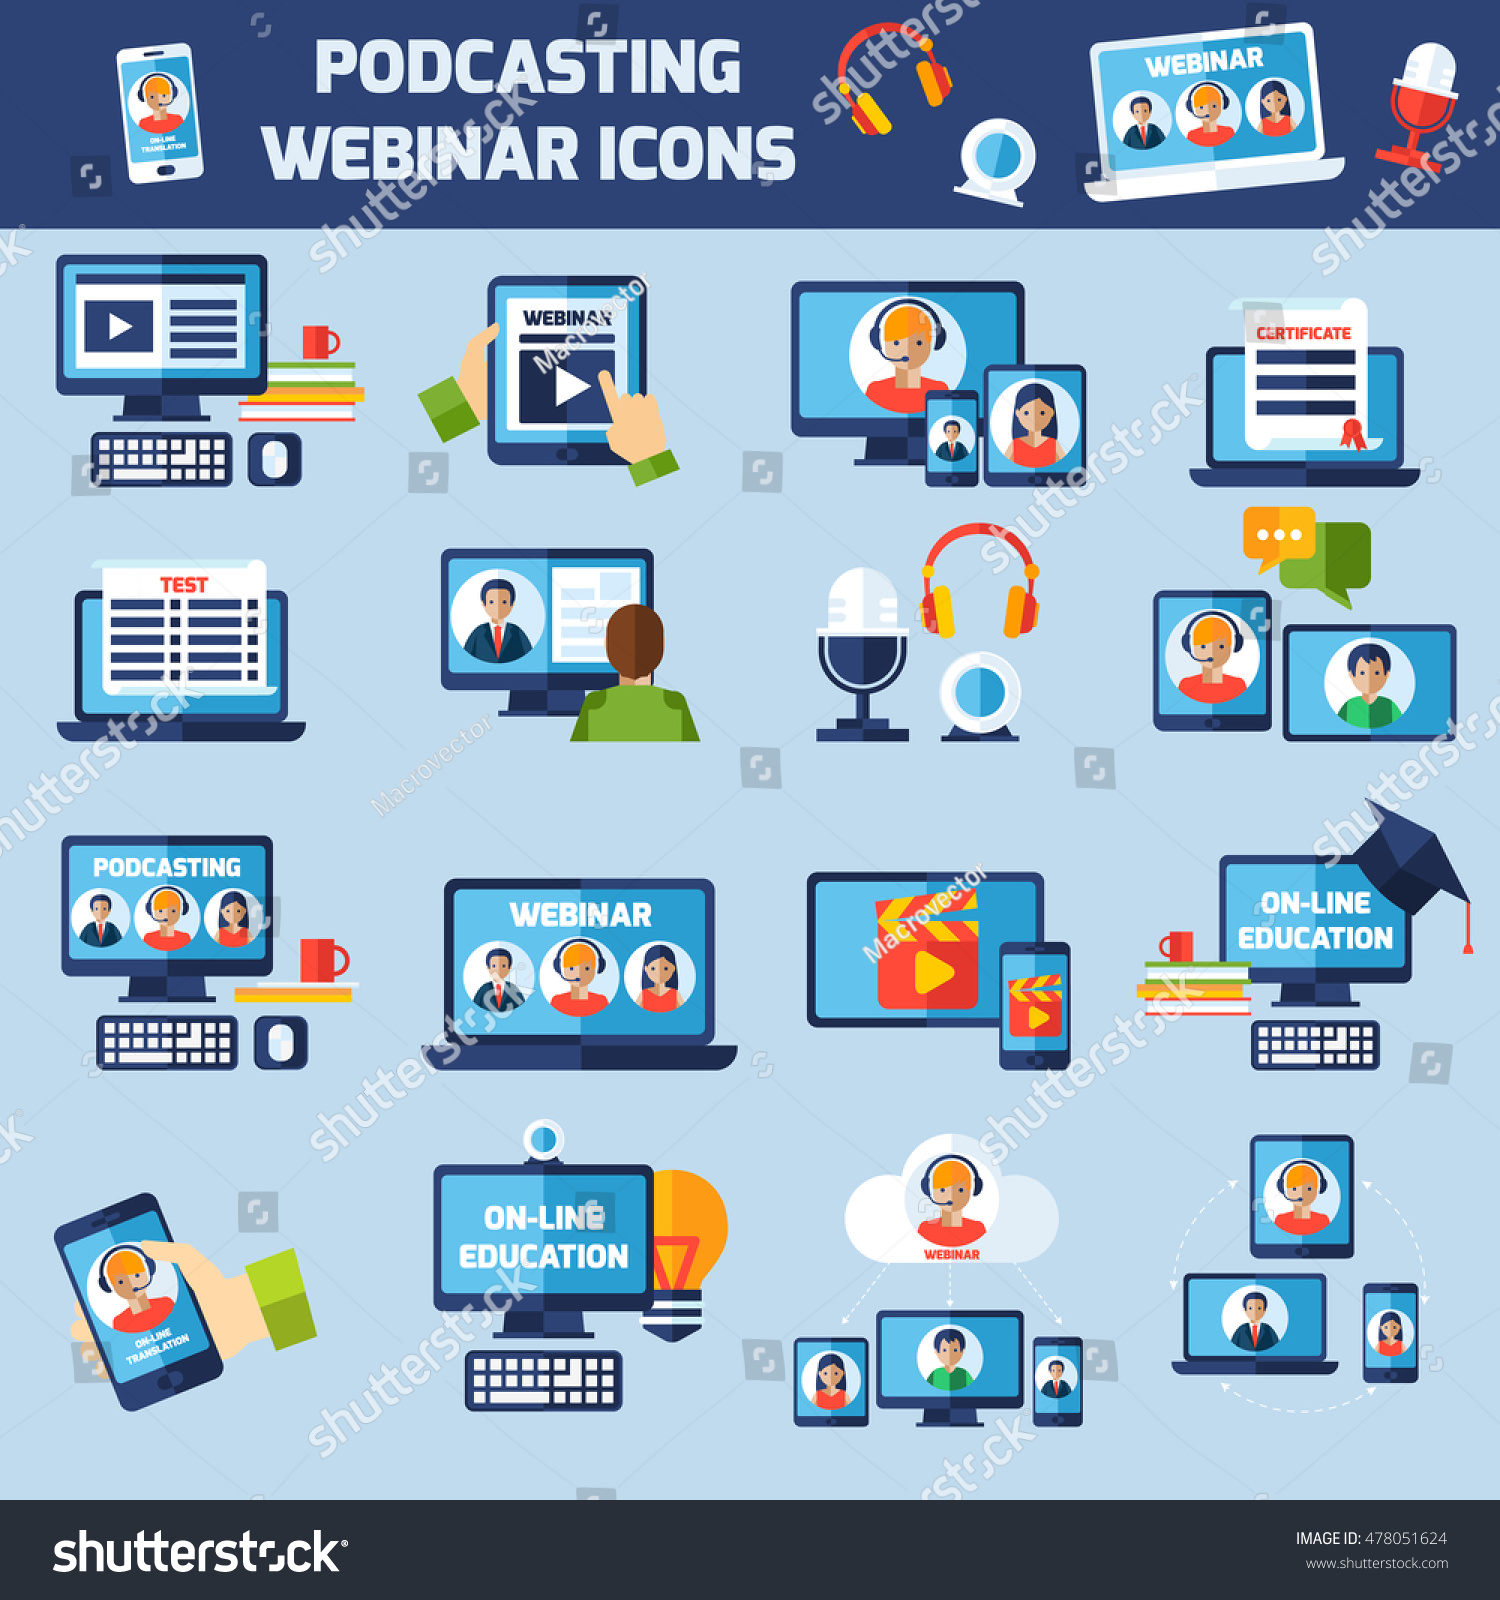 Podcasting Online Webinar Education Flat Icons Stock